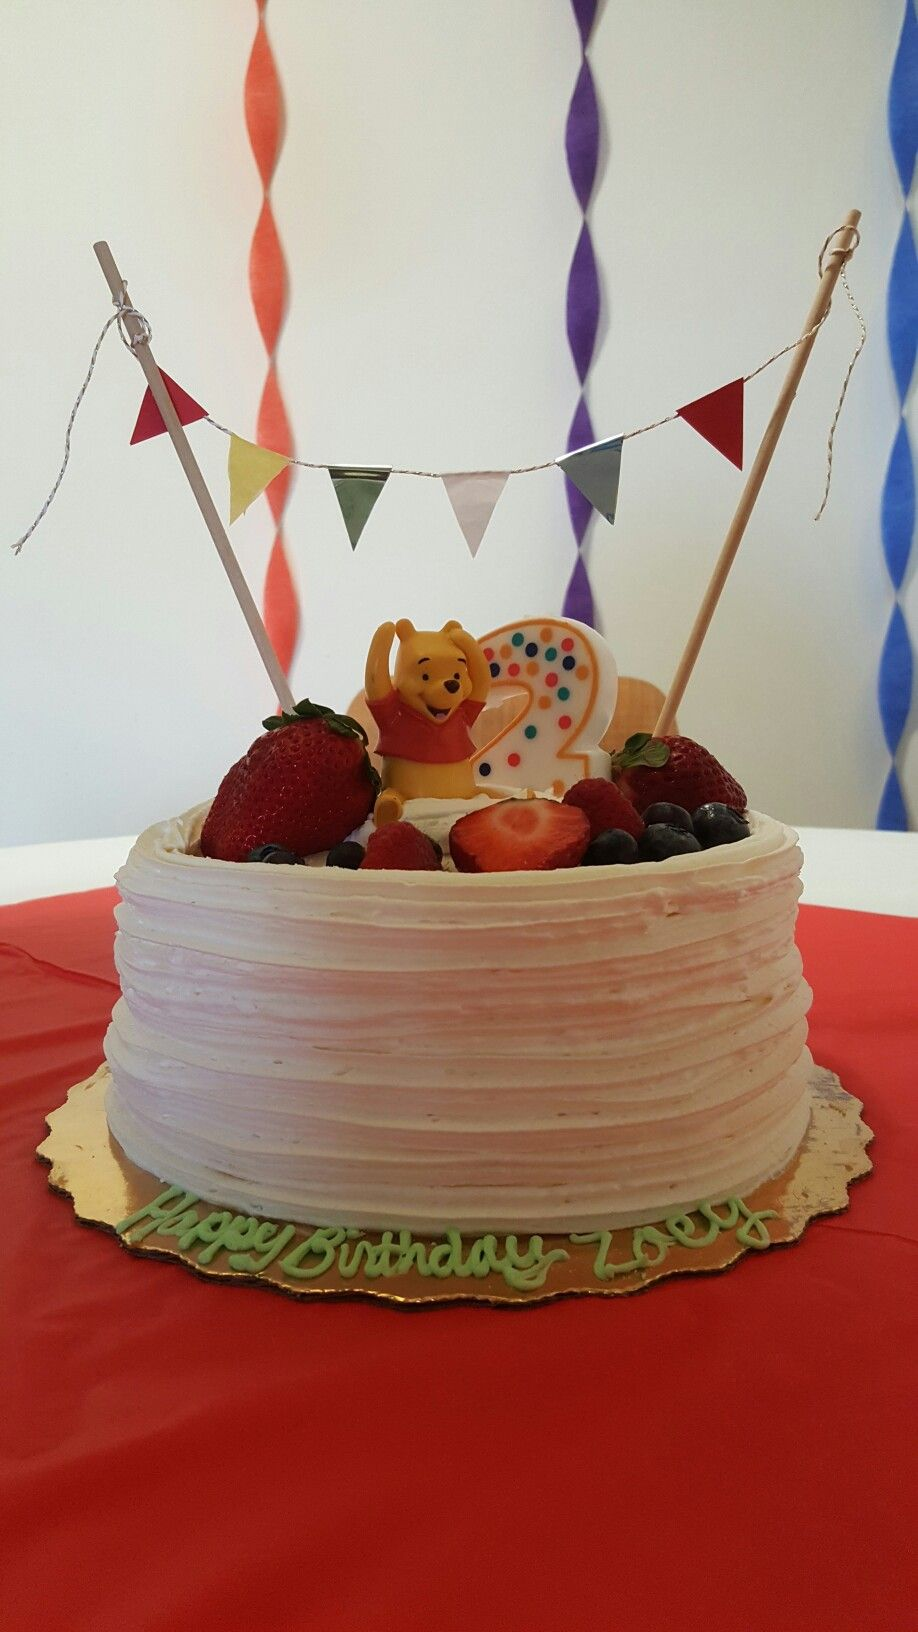 If you don't have the time or the talent of baking, buy some toy and and make a mini-banner to decorate a bakery cake